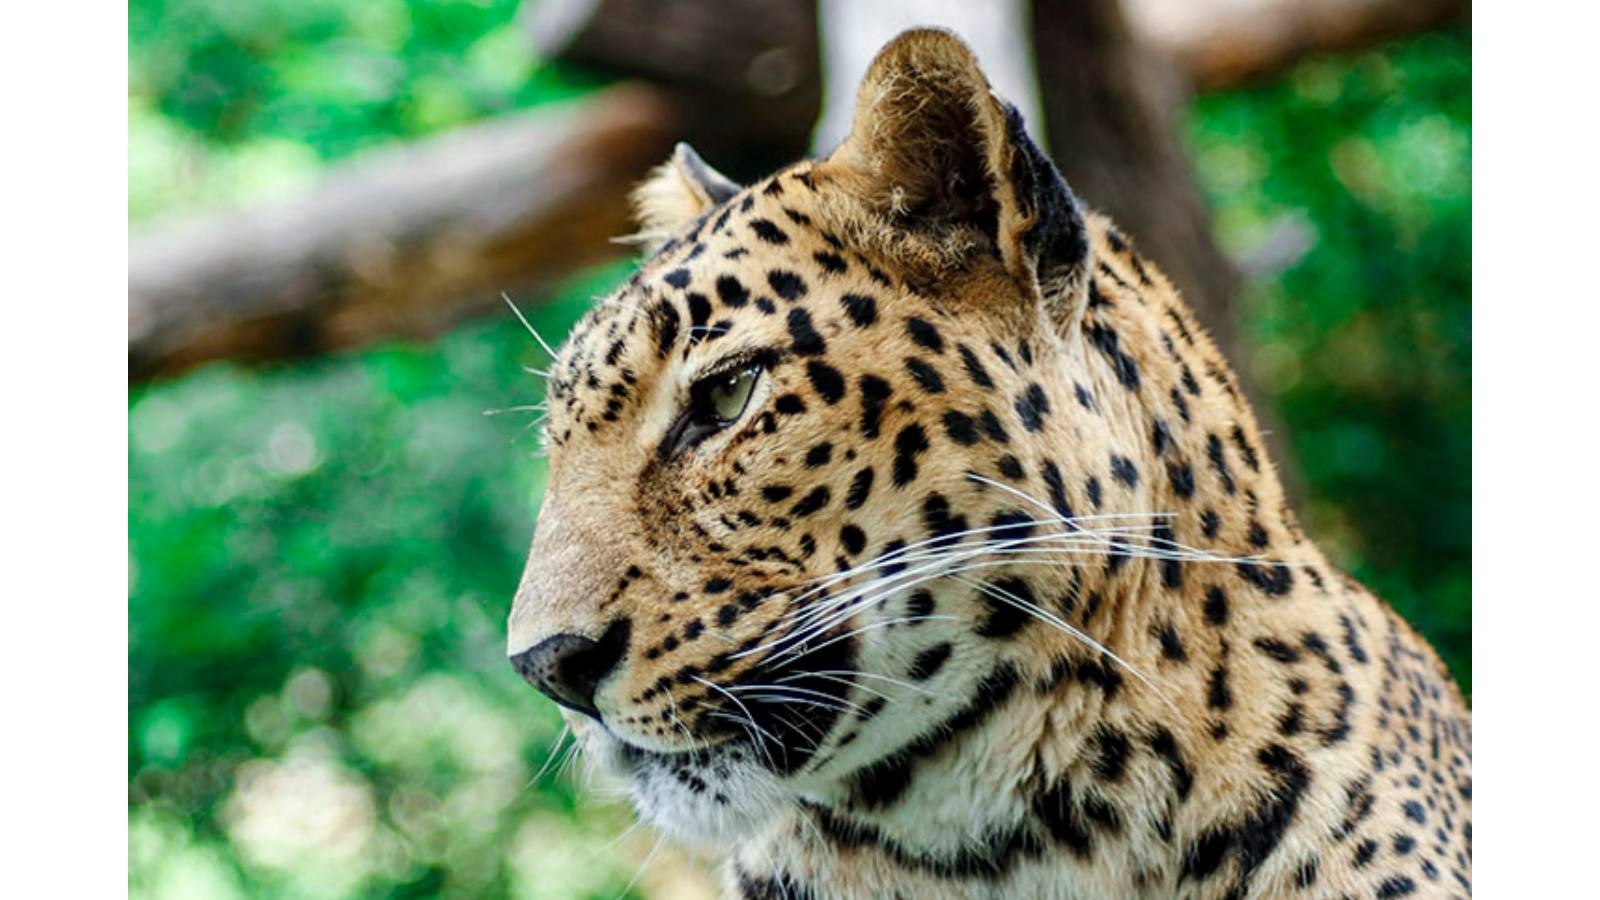 Rescued leopard - Jiya